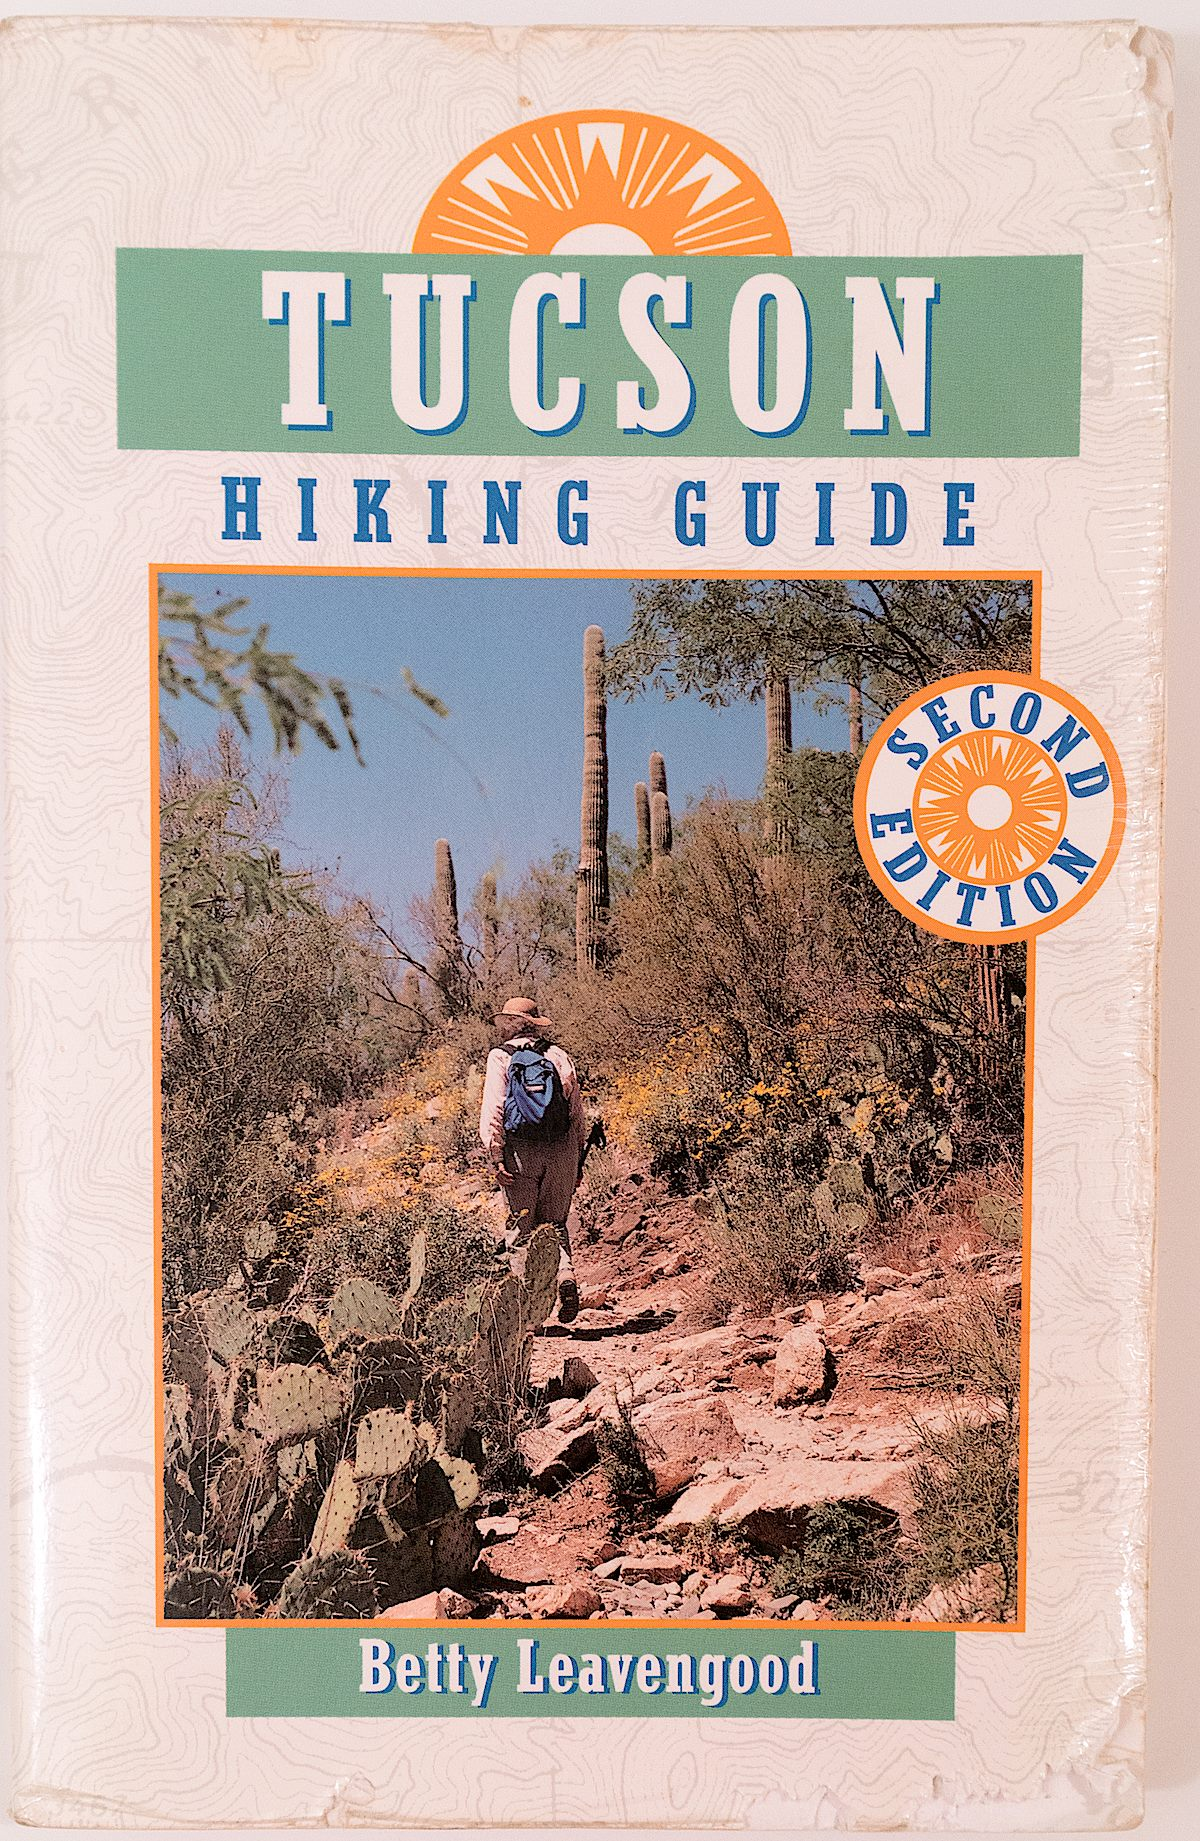 Tucson Hiking Guide 1st Edition. December 2016.